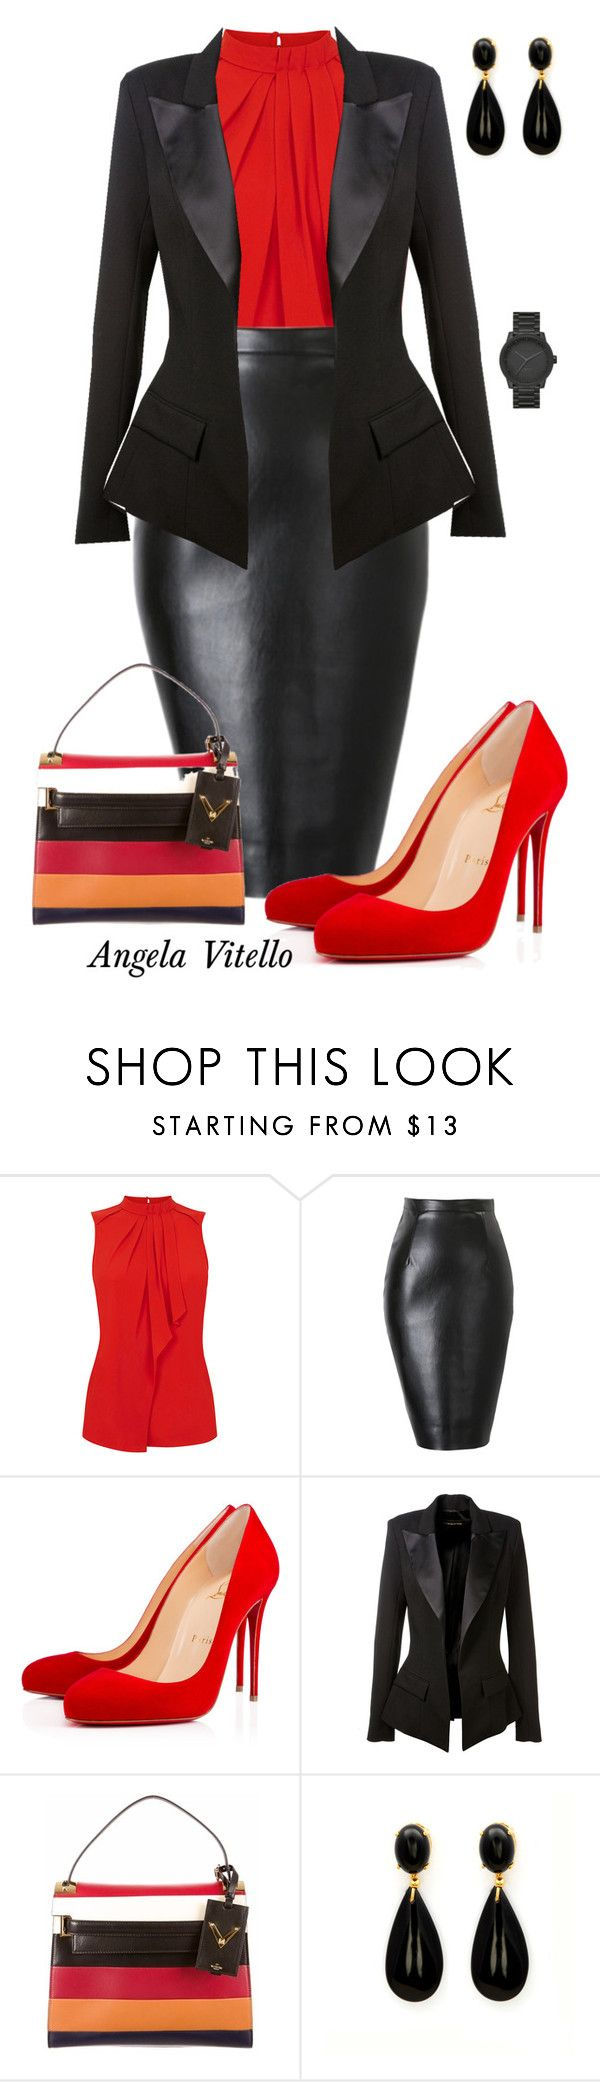 """""""Untitled #627"""" by angela-vitello on Polyvore featuring Oasis, Christian Louboutin, Alexandre Vauthier, Valentino and LEFF Amsterdam"""